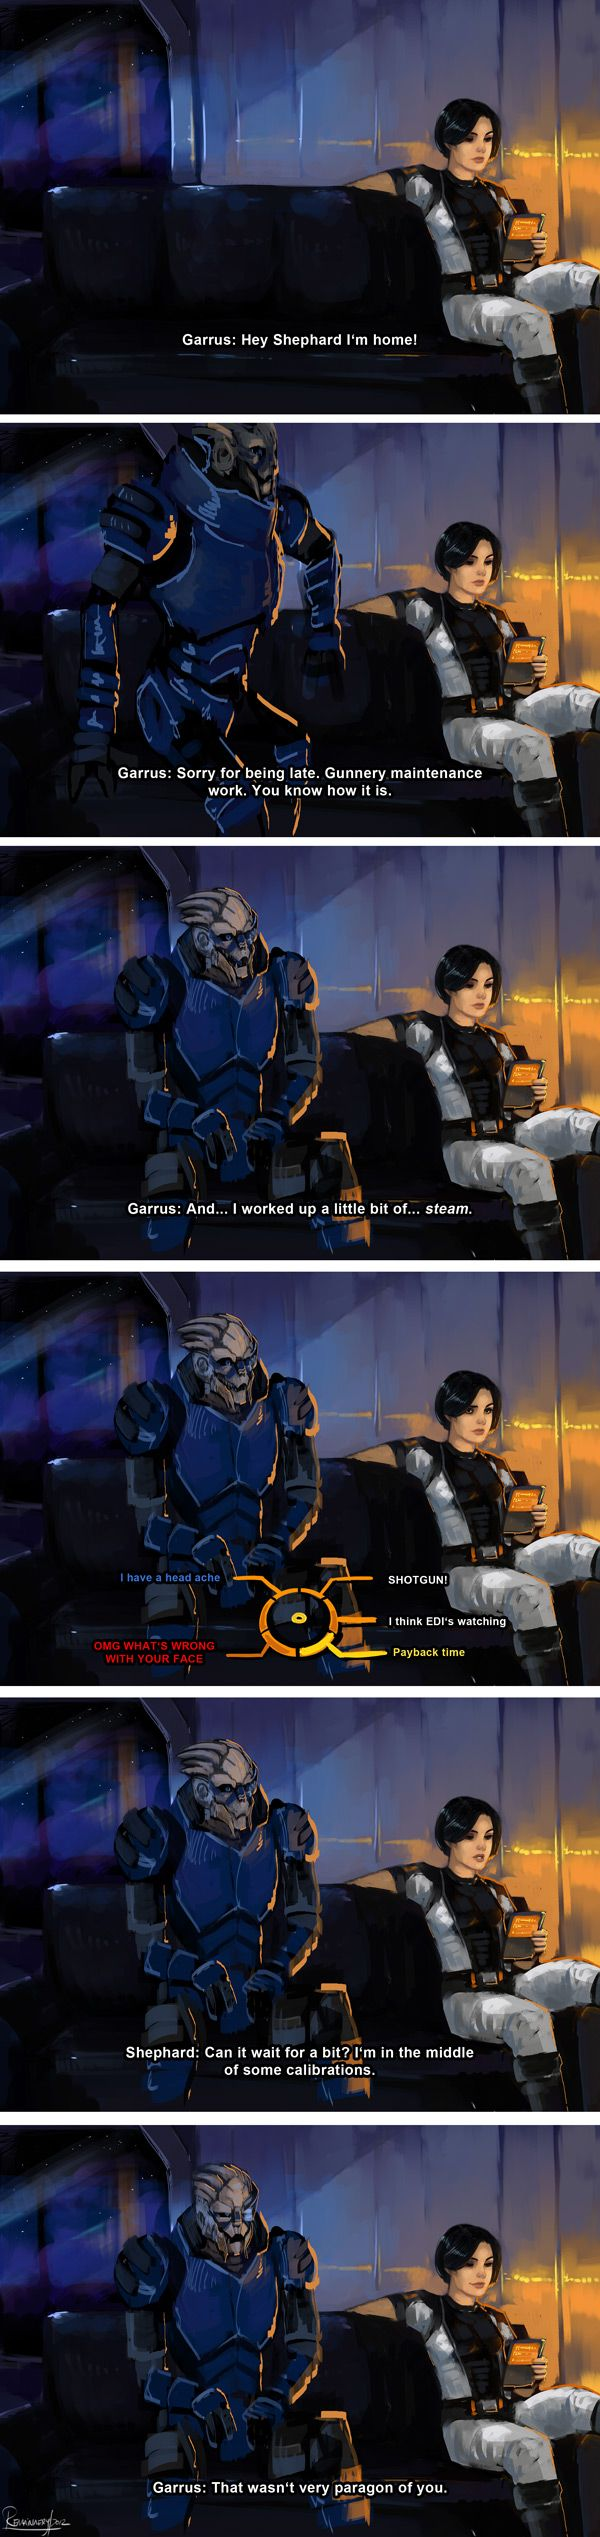 Can it wait for bit? I am in the middle of some calibrations. I wish this had been an option. Shepard and Garrus being a adorable.